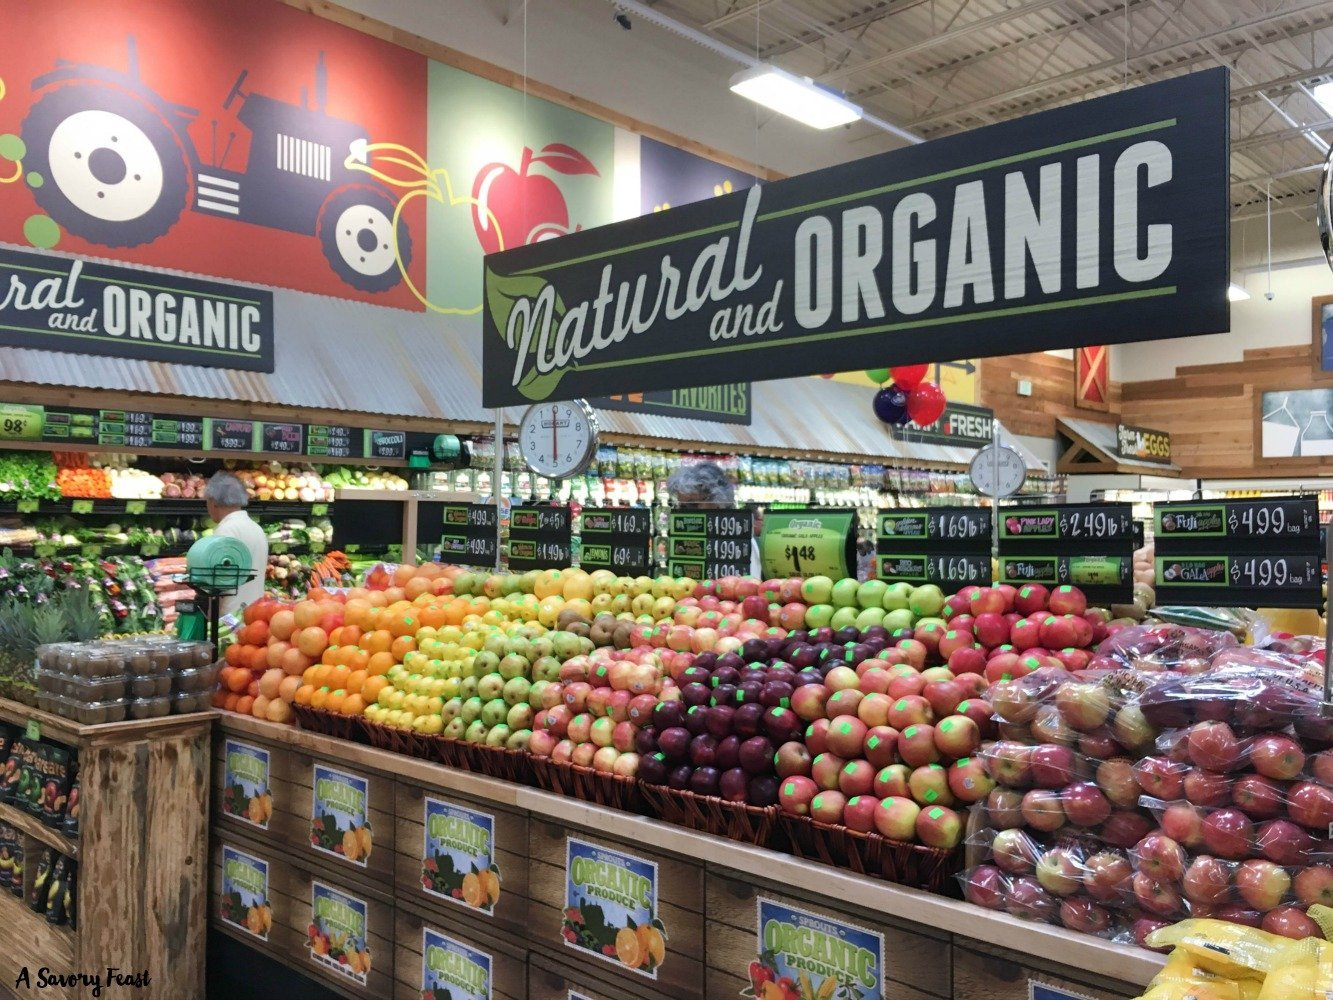 At the center of Sprouts is their produce. It's a HUGE section packed with a wide variety of natural and organic fruits and veggies.